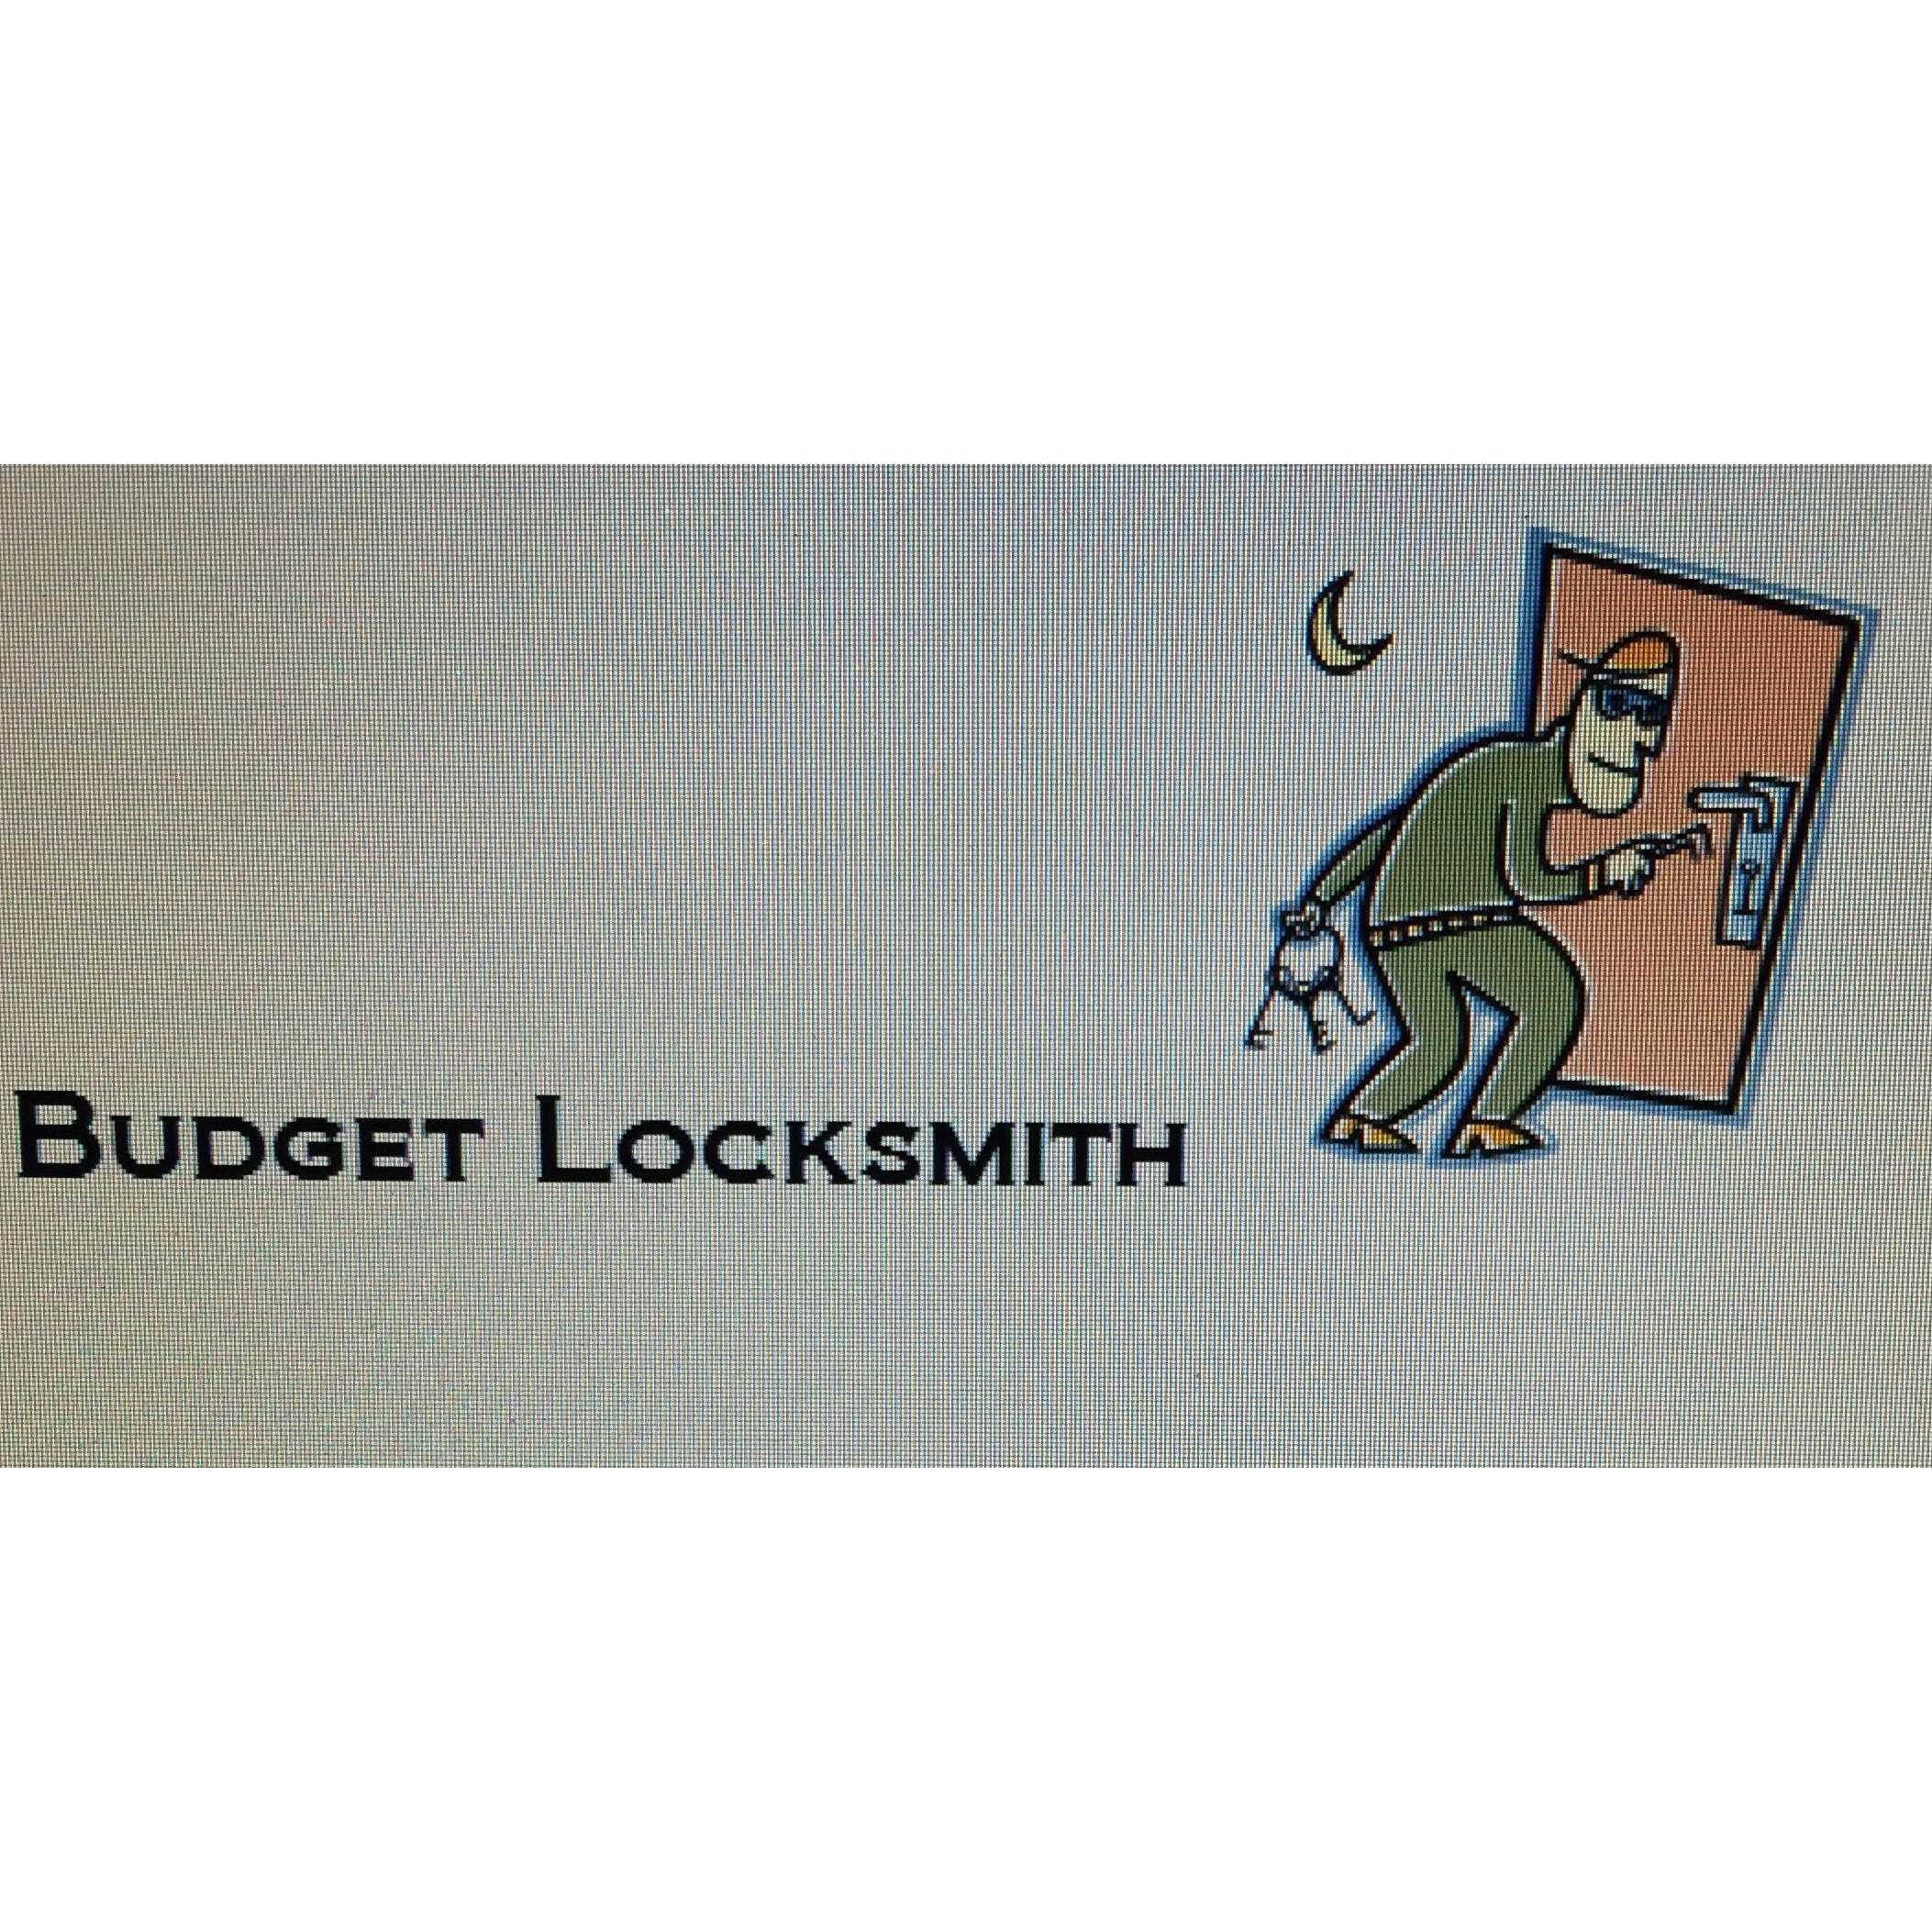 Budget Locksmith Inc